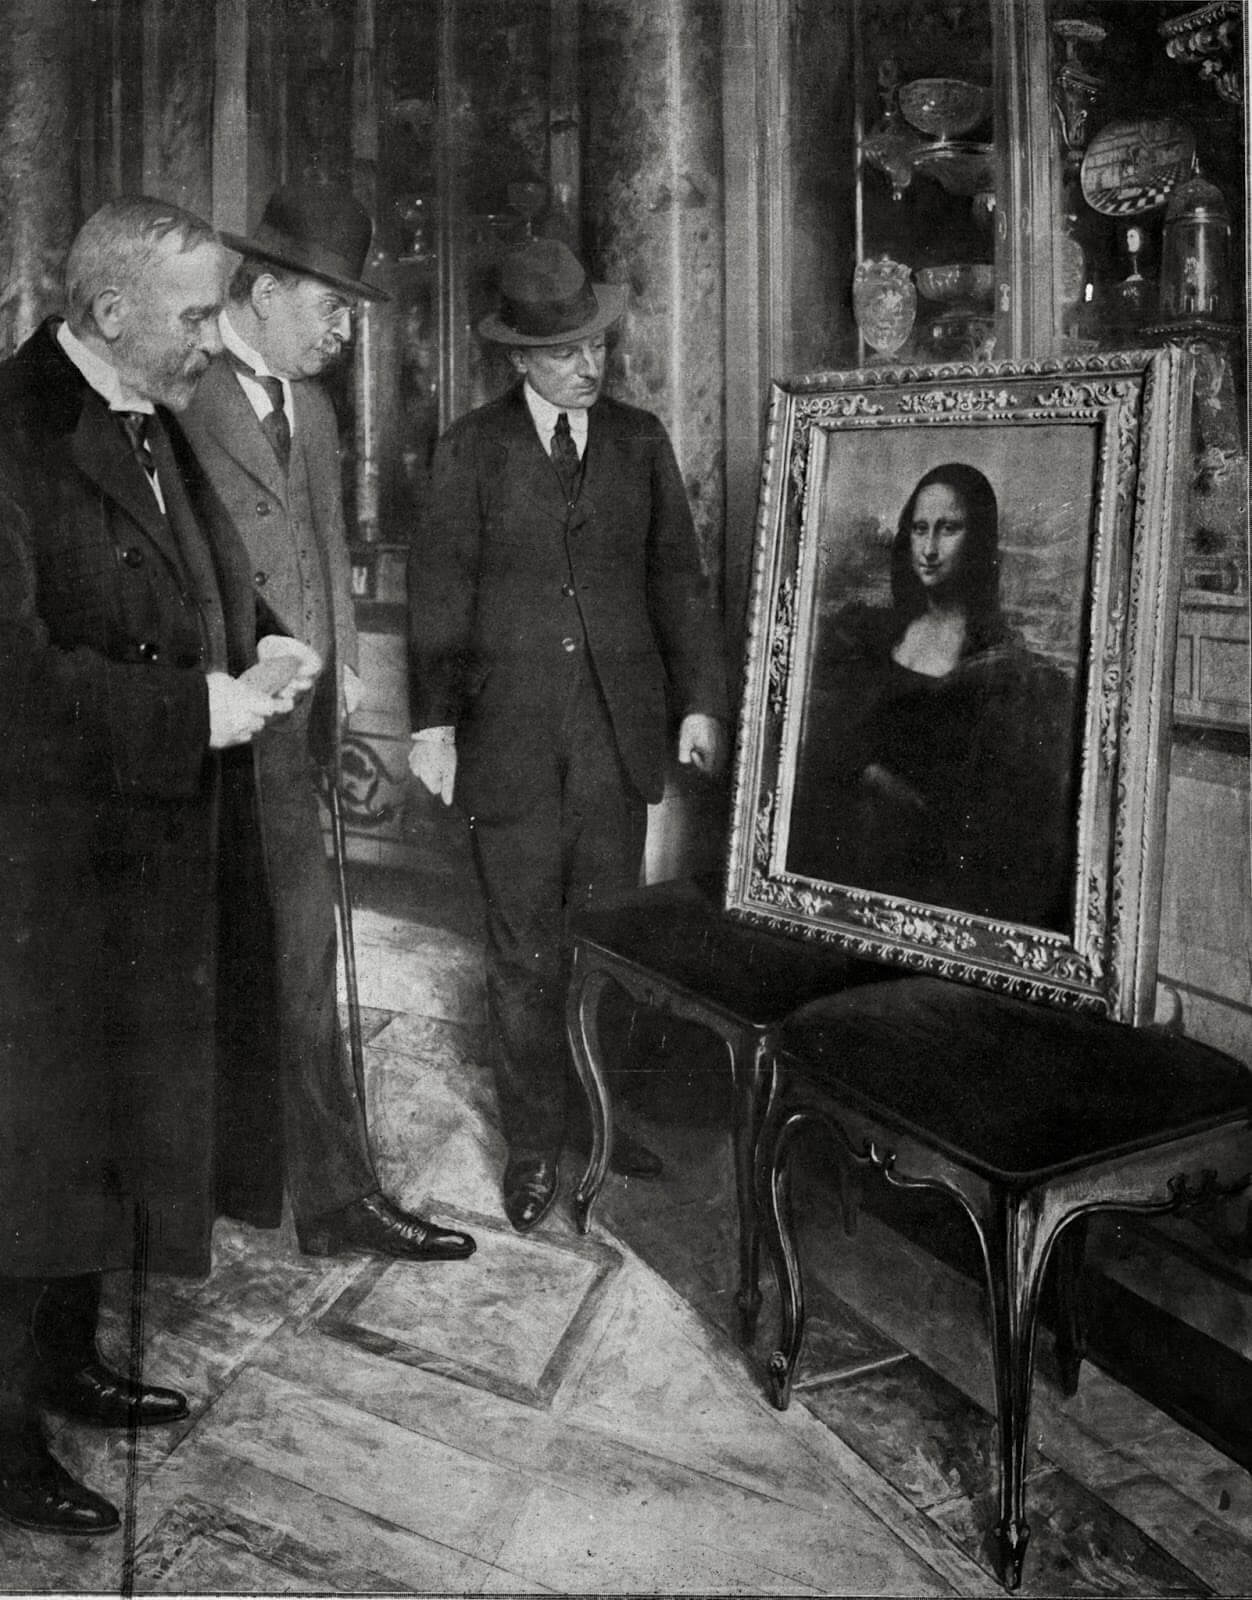 The Mona Lisa on display in the Uffizi Gallery, in Florence, 1913. Museum director Giovanni Poggi (right) inspects the painting.